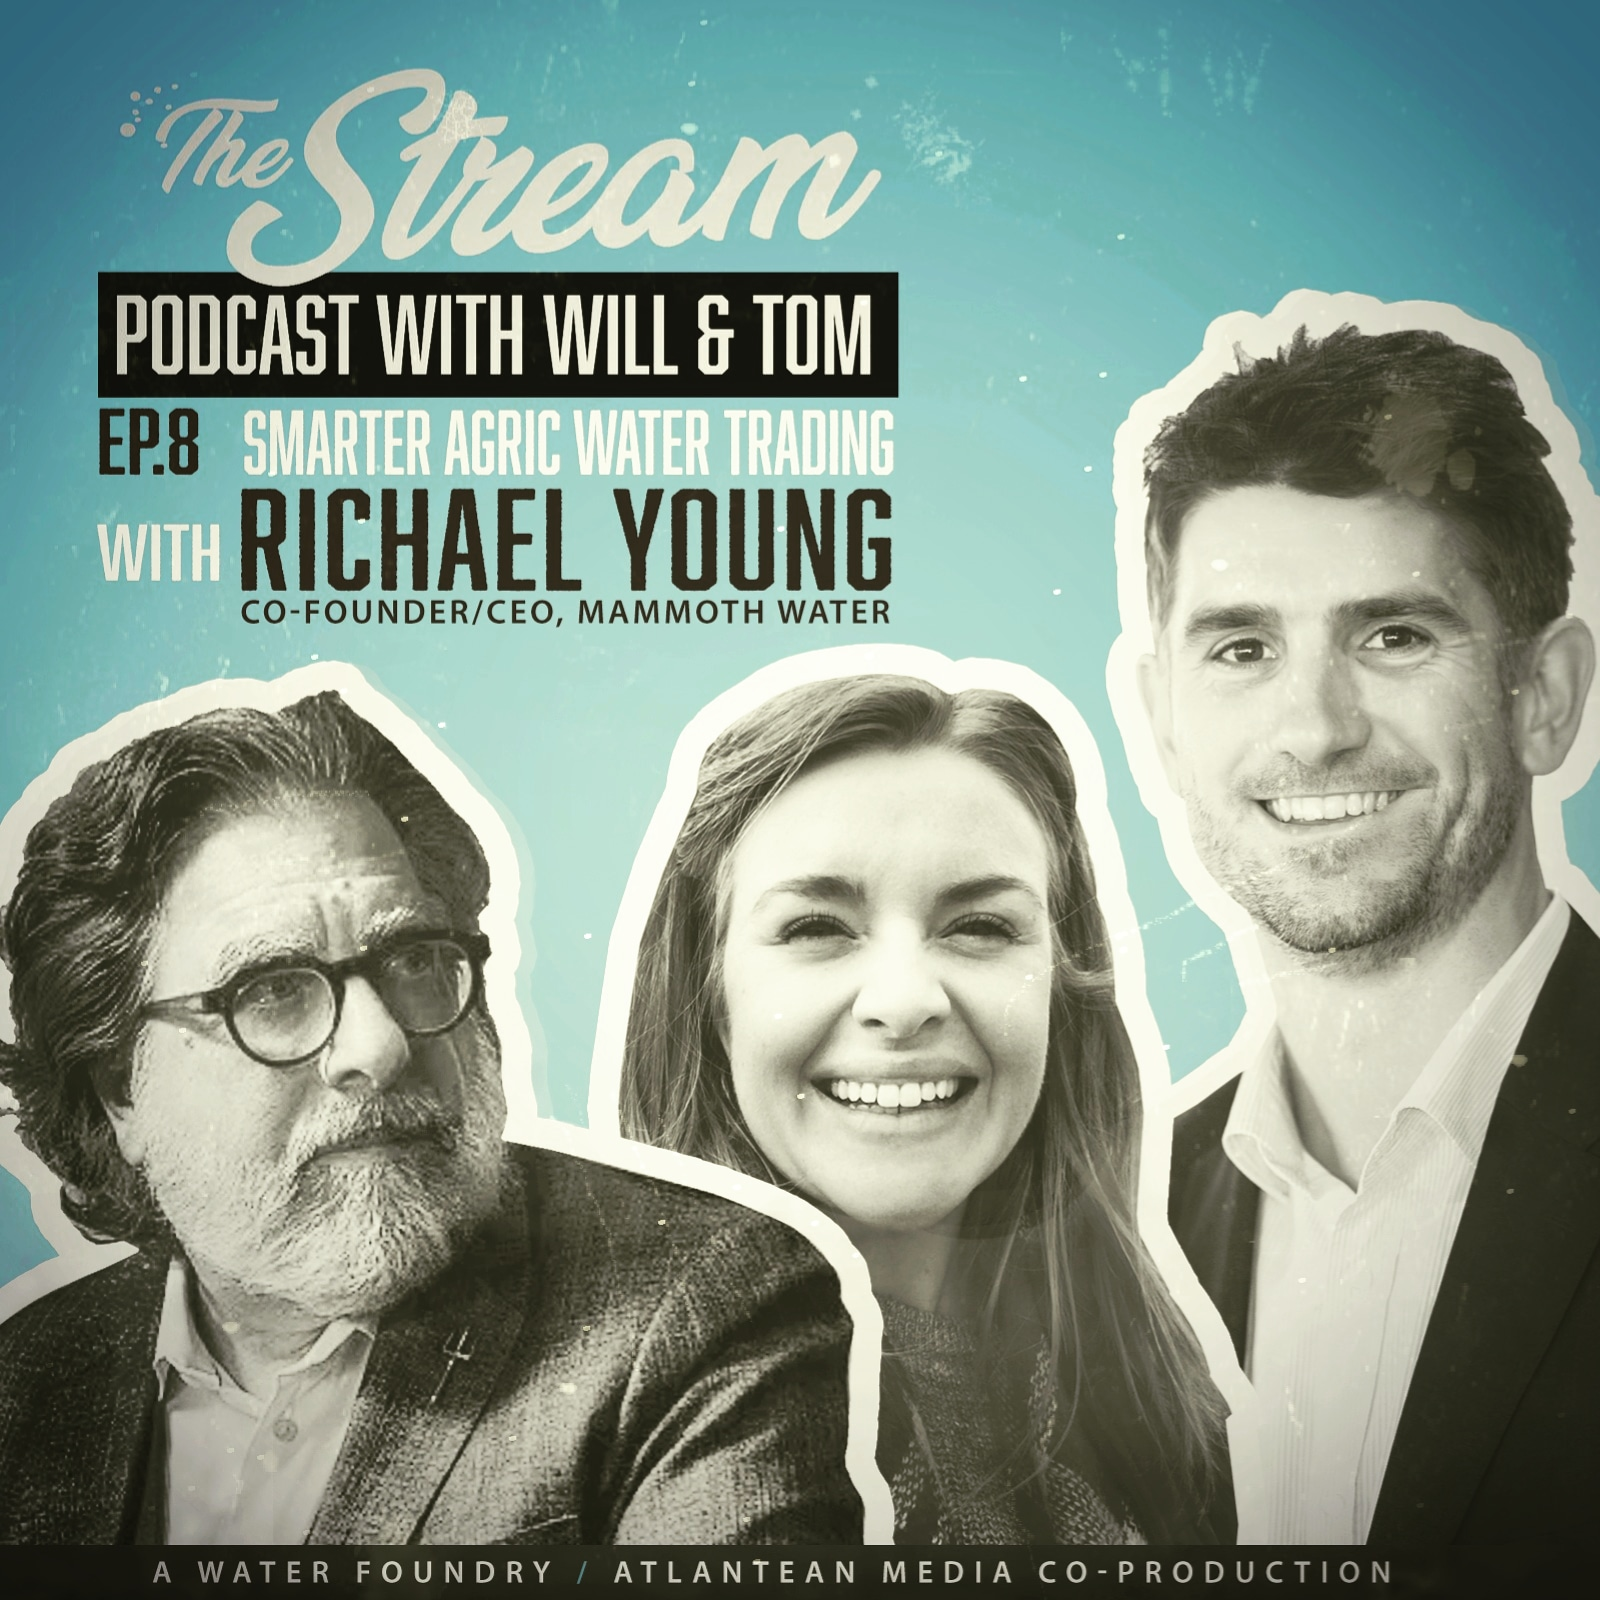 Richael joins The Stream Podcast with Will & Tom